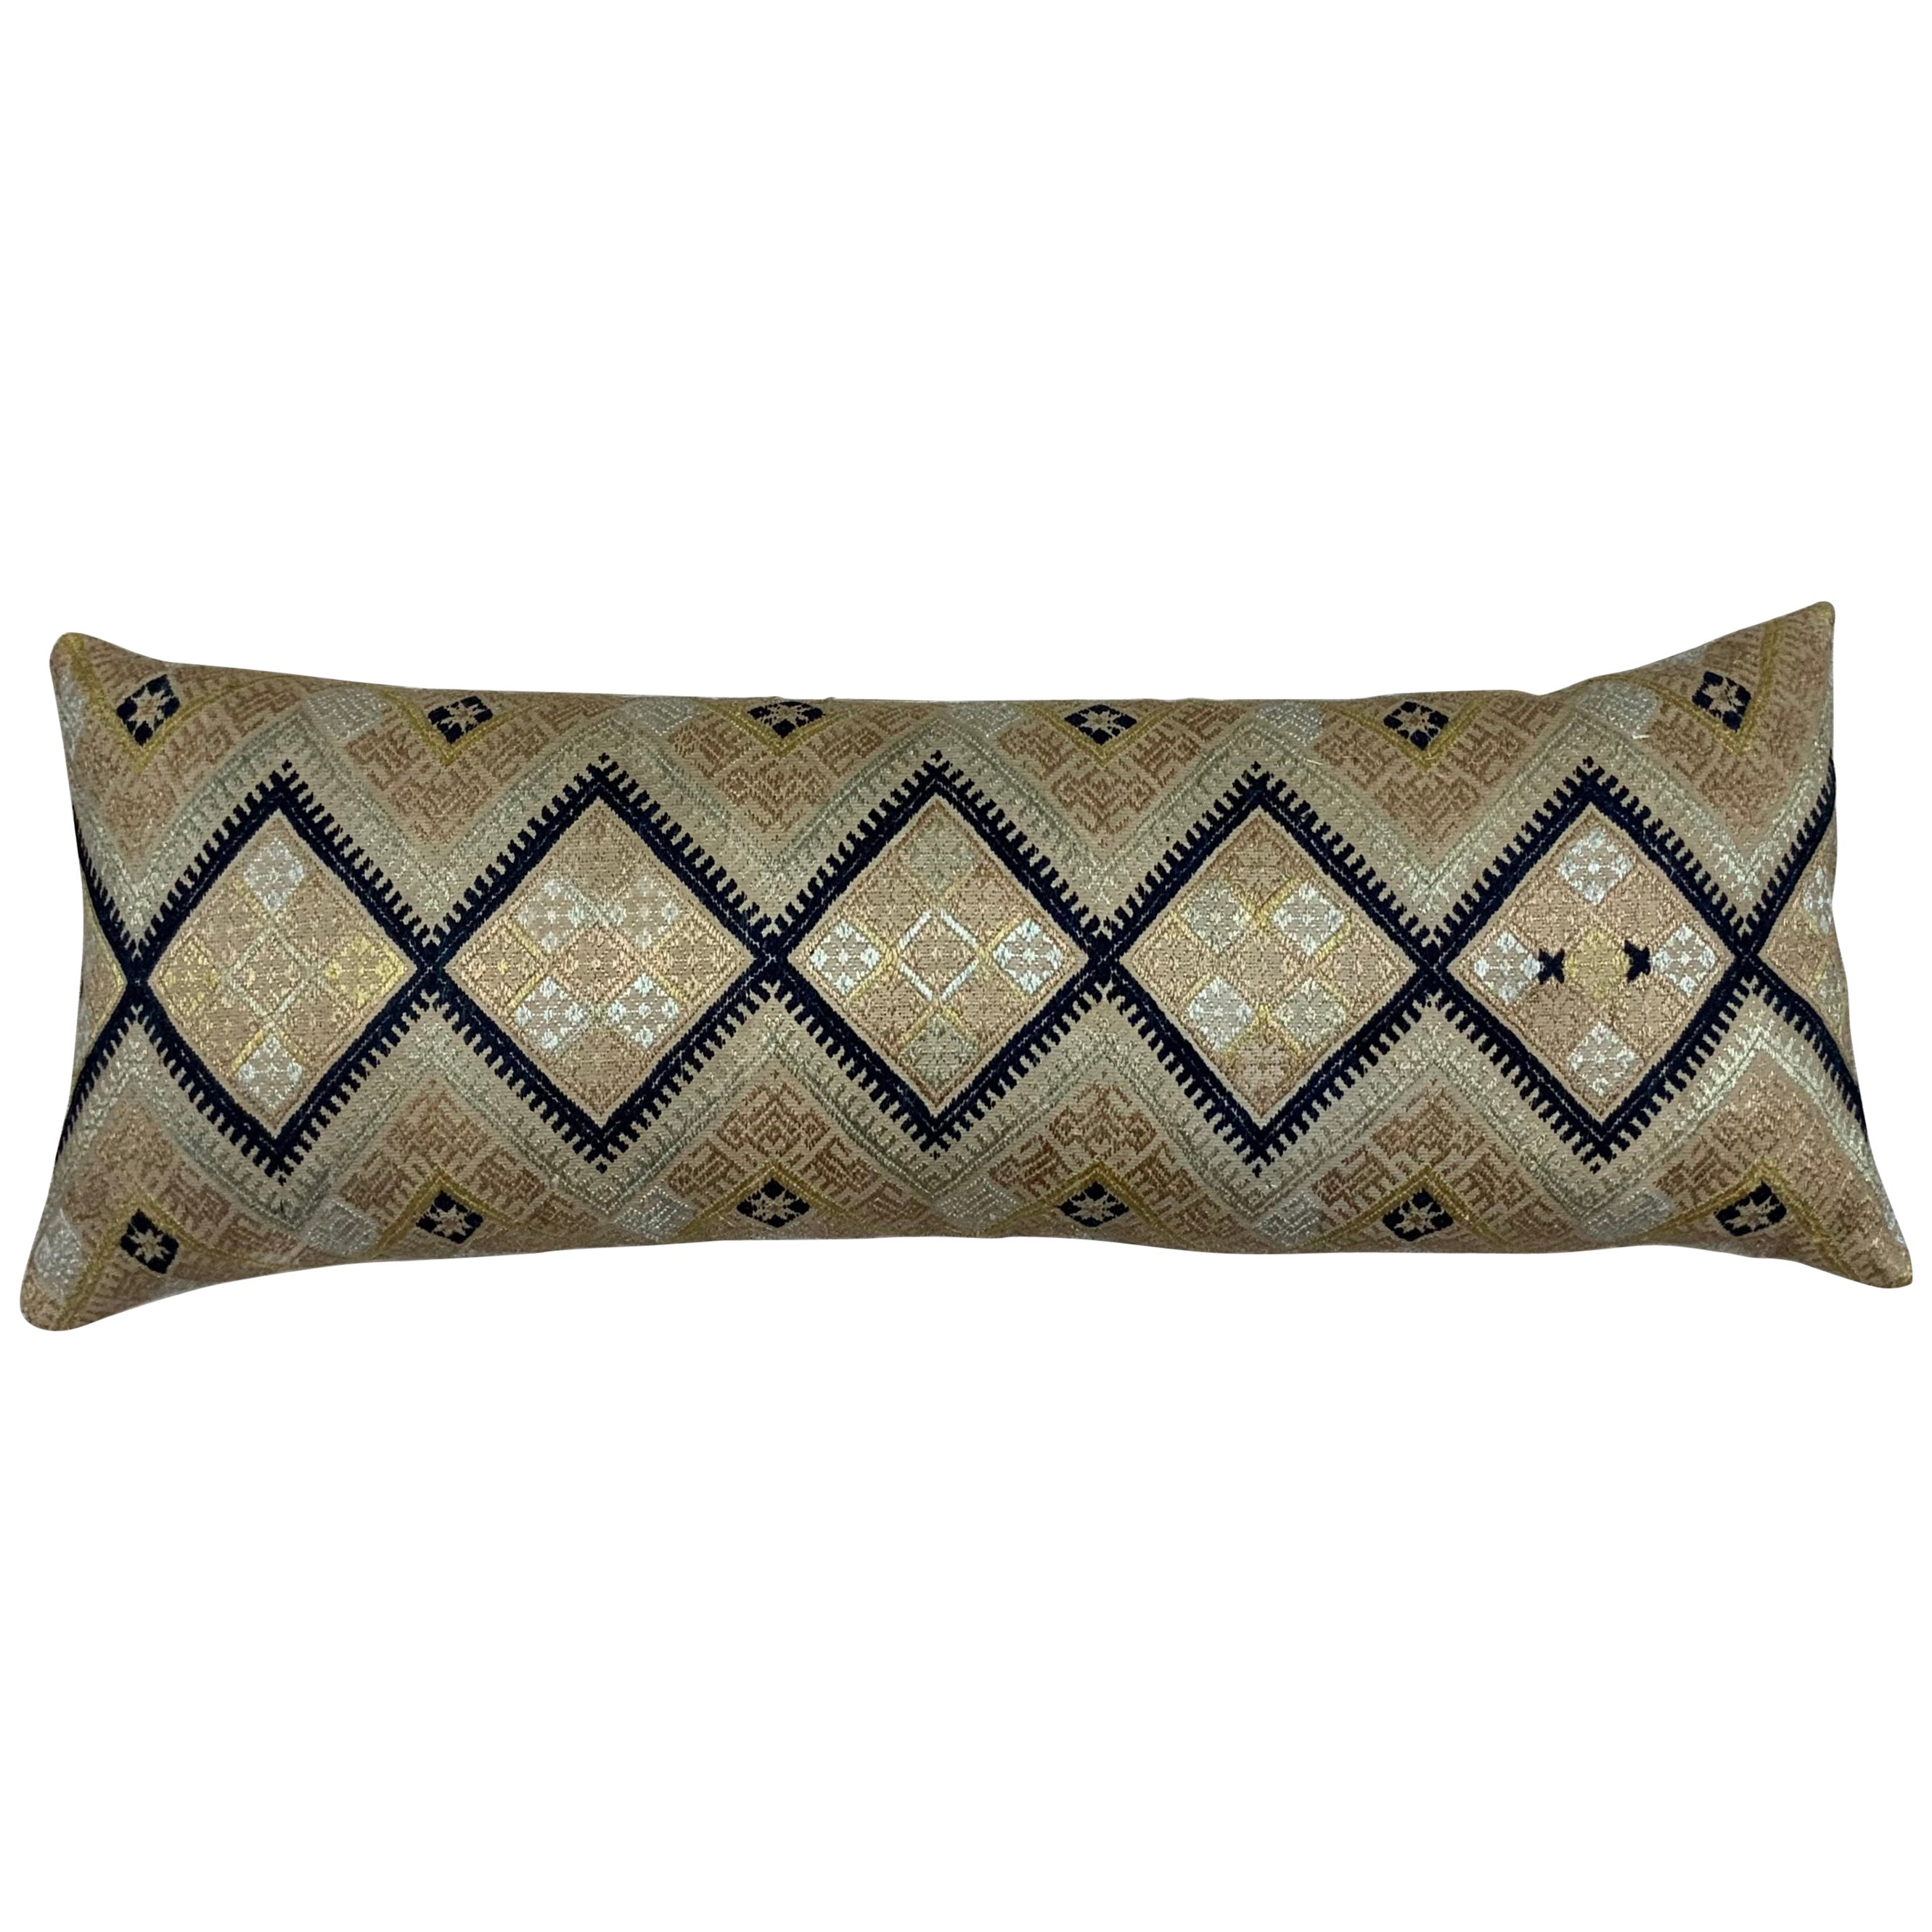 Vintage Hand Embroidery Suzani Pillows